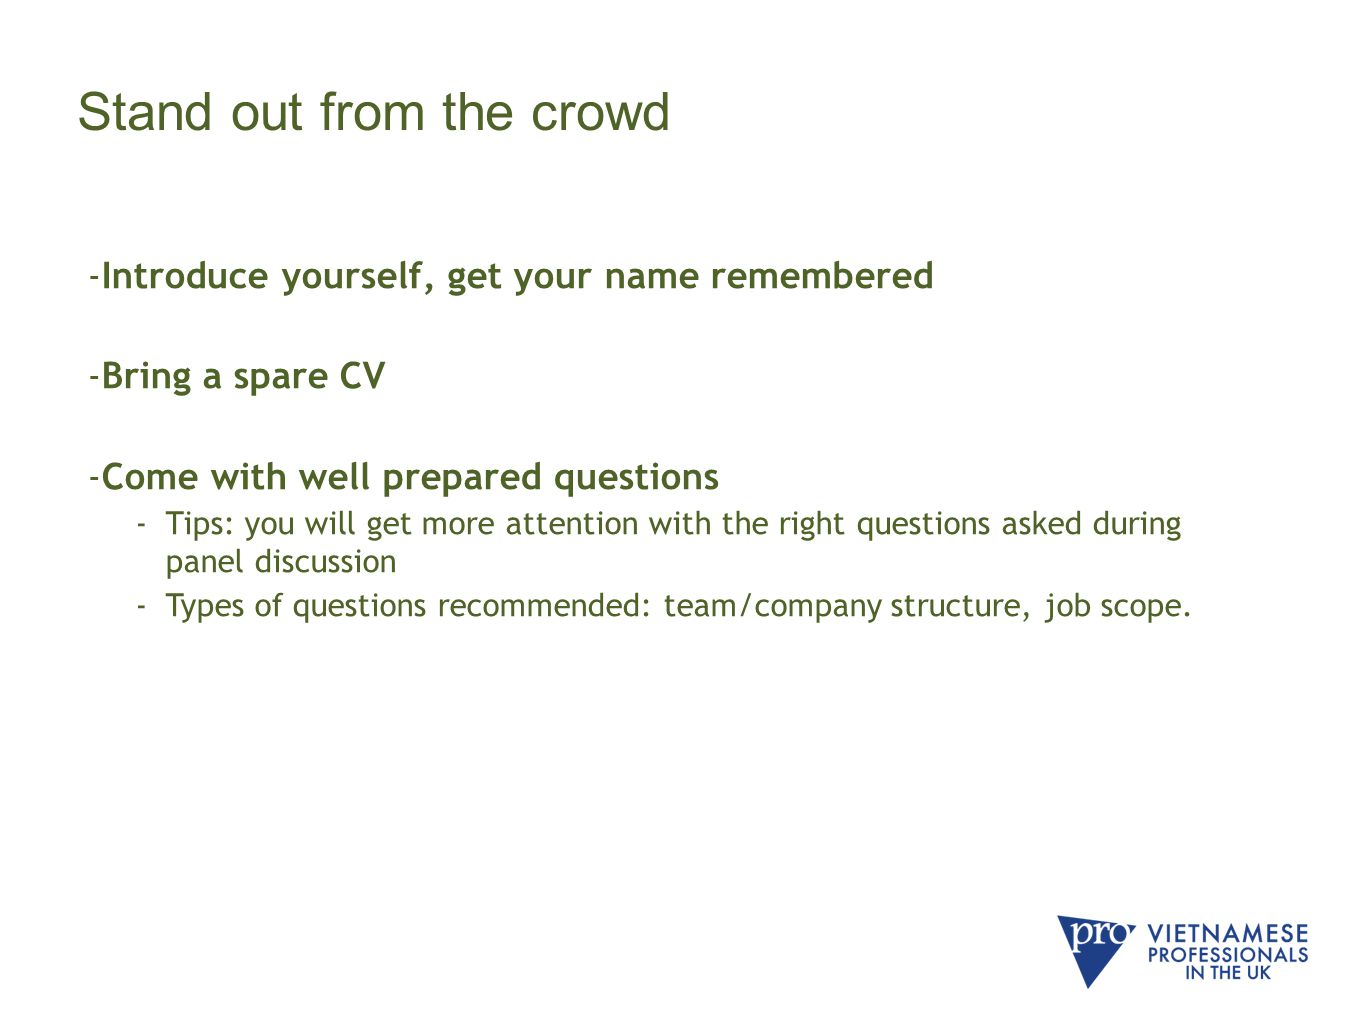 Stand out from the crowd -Introduce yourself, get your name remembered -Bring a spare CV -Come with well prepared questions -Tips: you will get more attention with the right questions asked during panel discussion -Types of questions recommended: team/company structure, job scope.